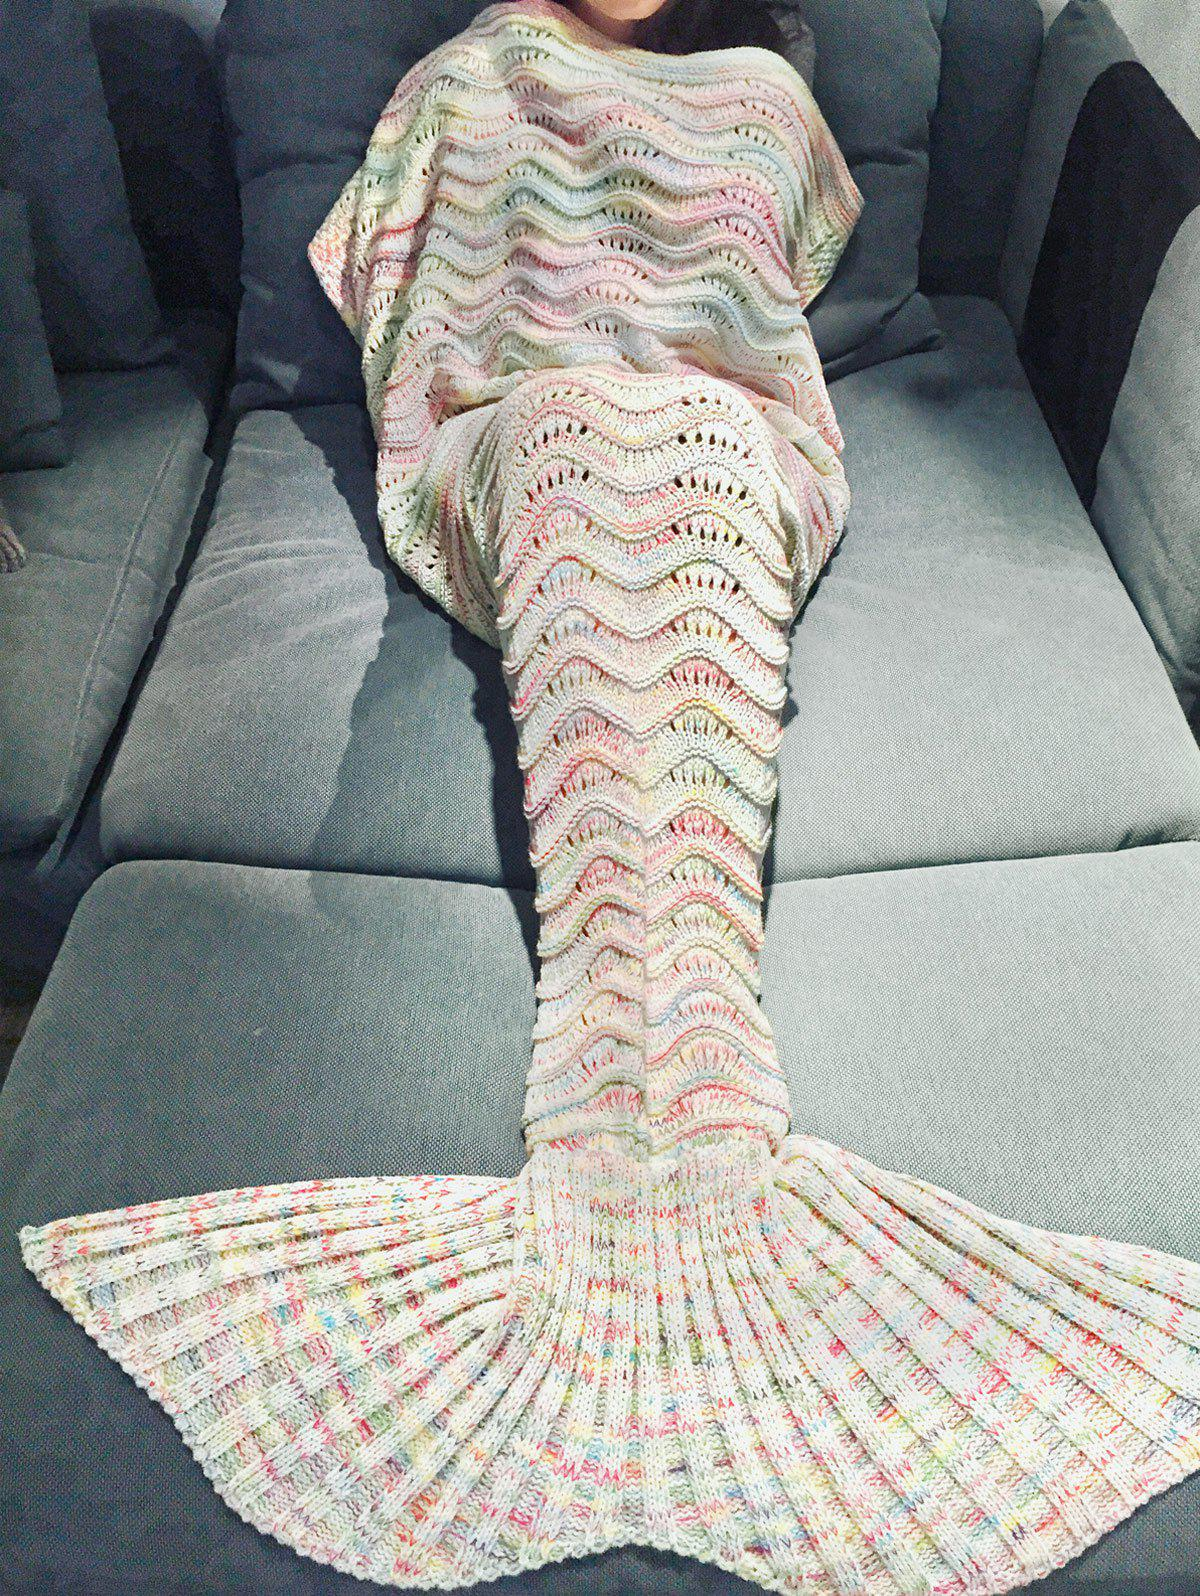 Handmade Knitted Mermaid Tail Design Blanket - OFF WHITE